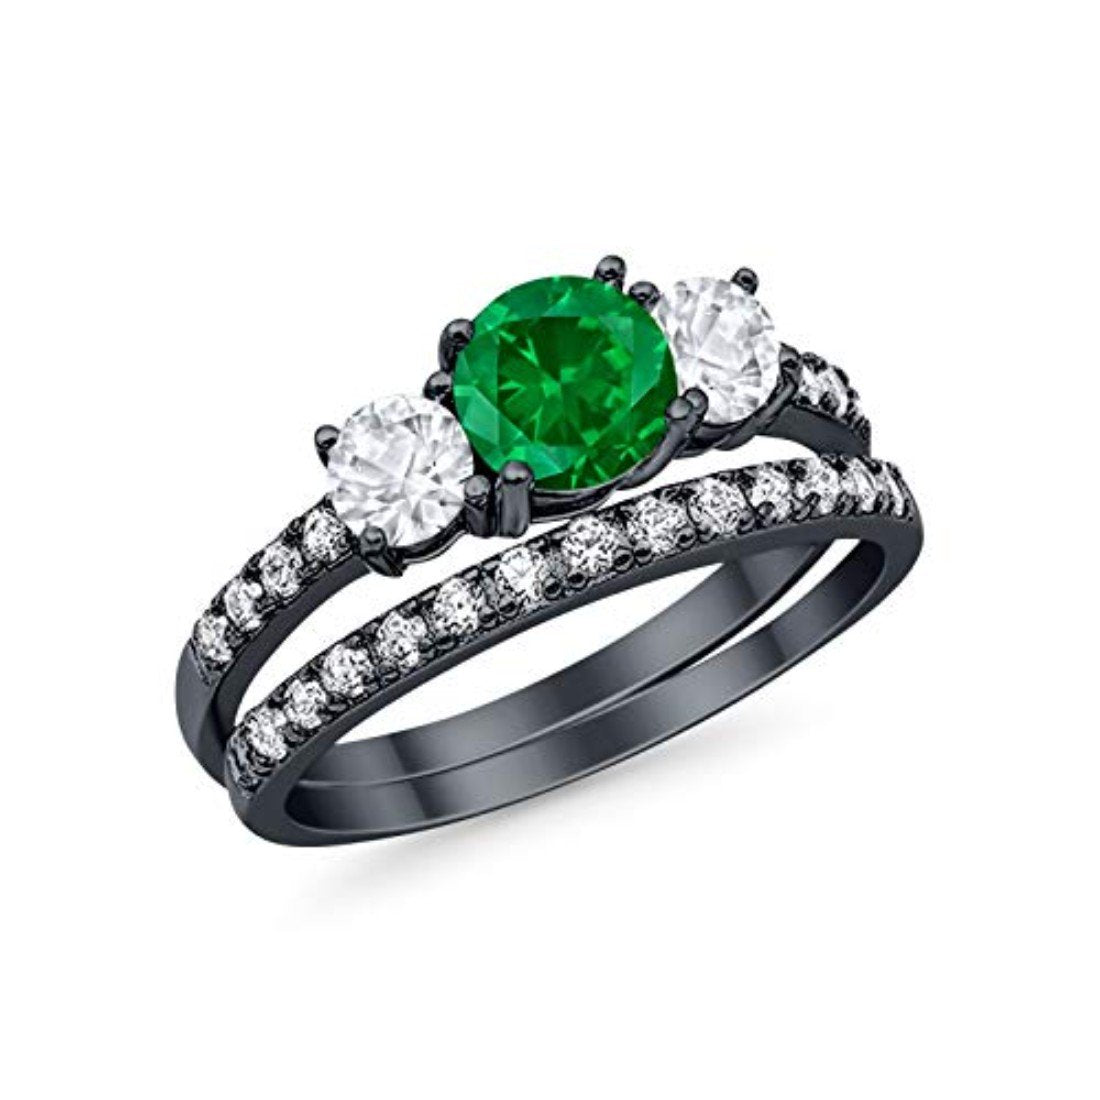 Wedding Piece Ring Black Tone, Simulated Green Emerald CZ 925 Sterling Silver